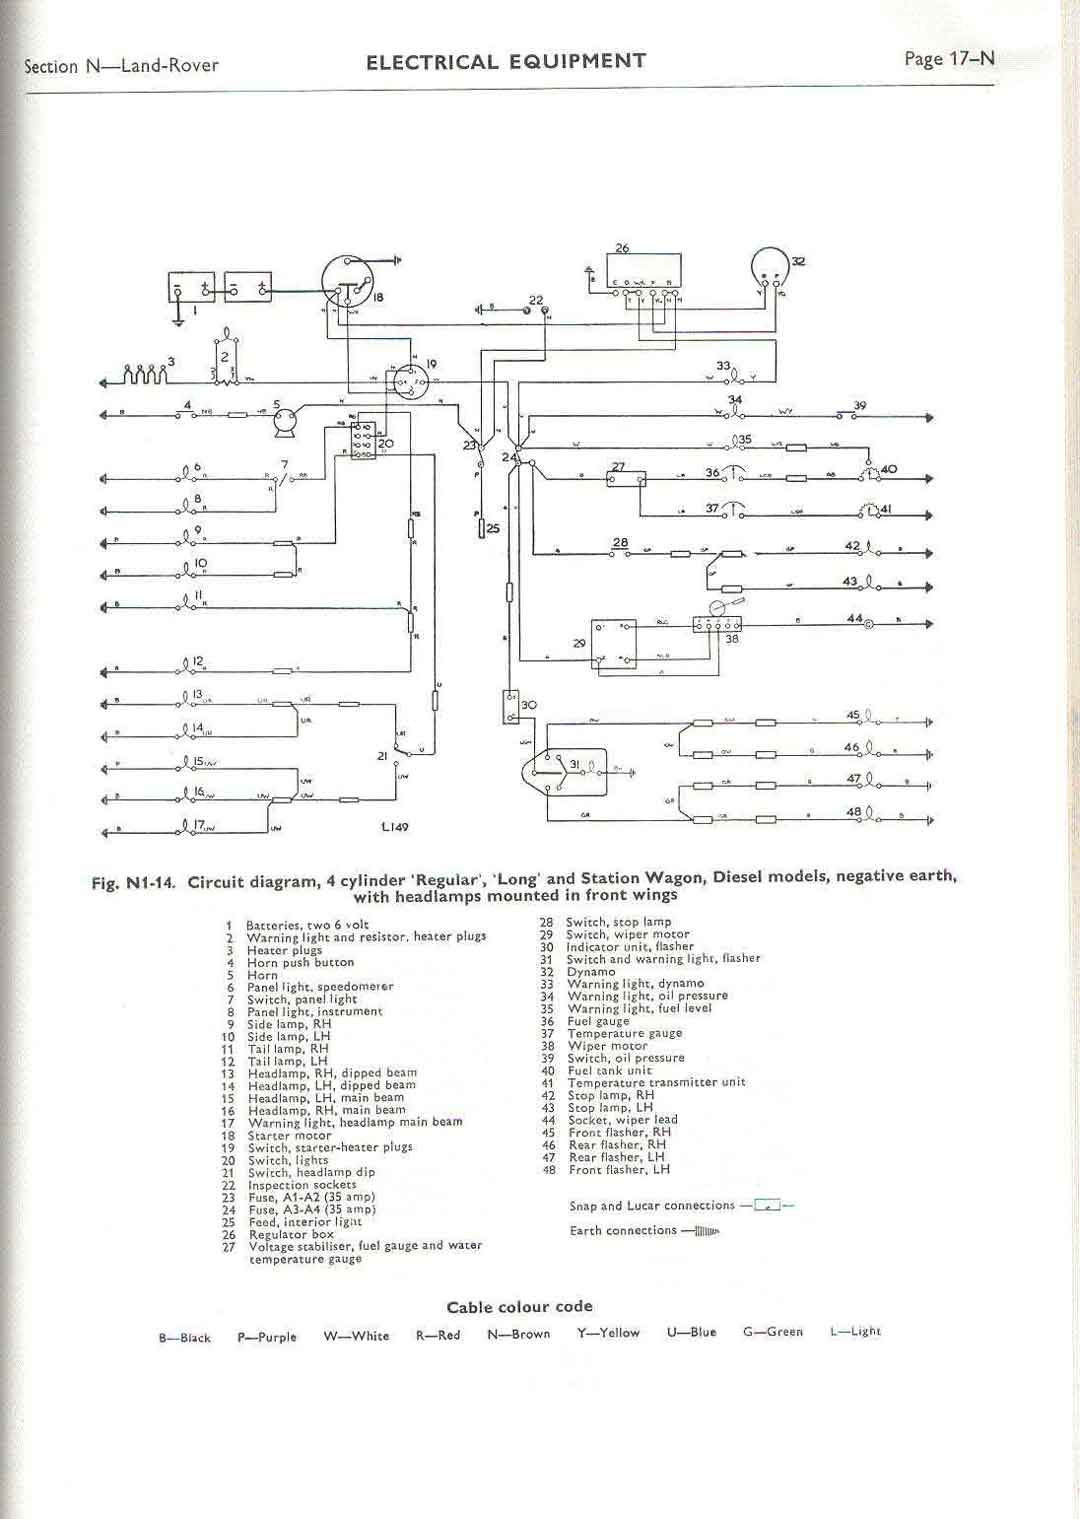 hight resolution of land rover series iia wiring diagram wiring library rh 90 skriptoase de land rover series 1 wiring diagram land rover series ii wiring diagram